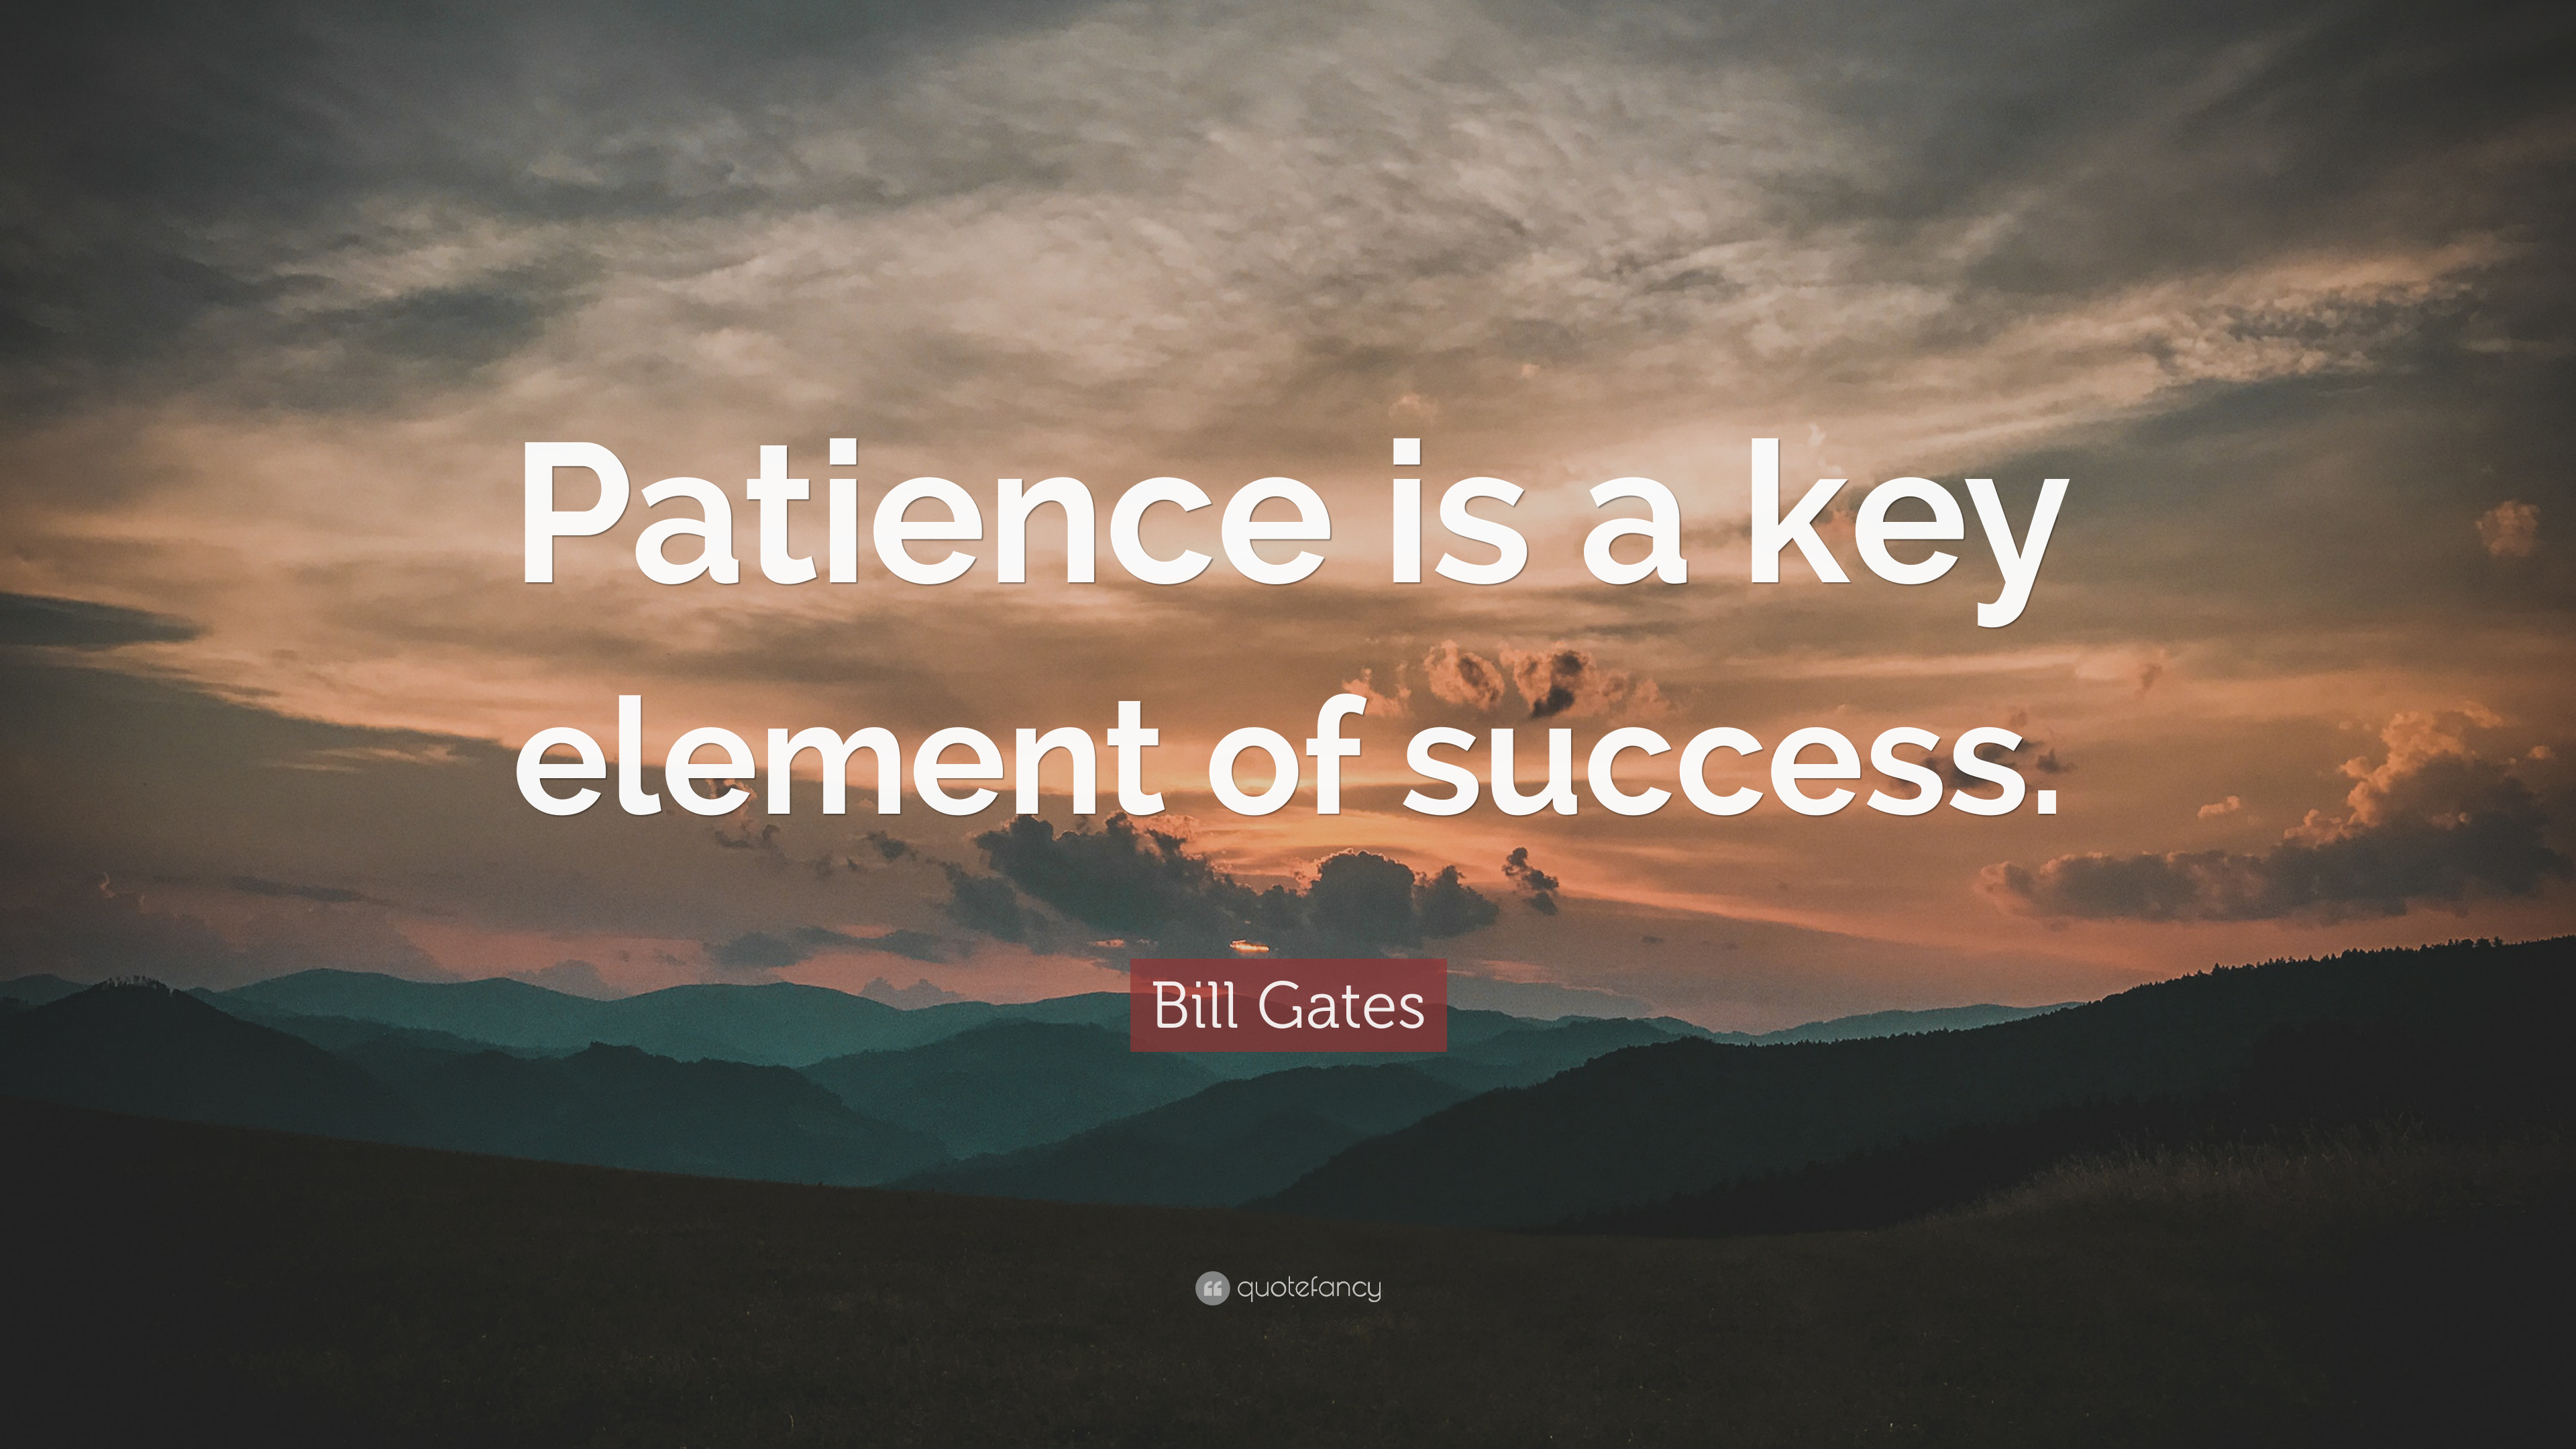 patience key success gates bill element quote quotes inspirational business quotefancy inspiring points